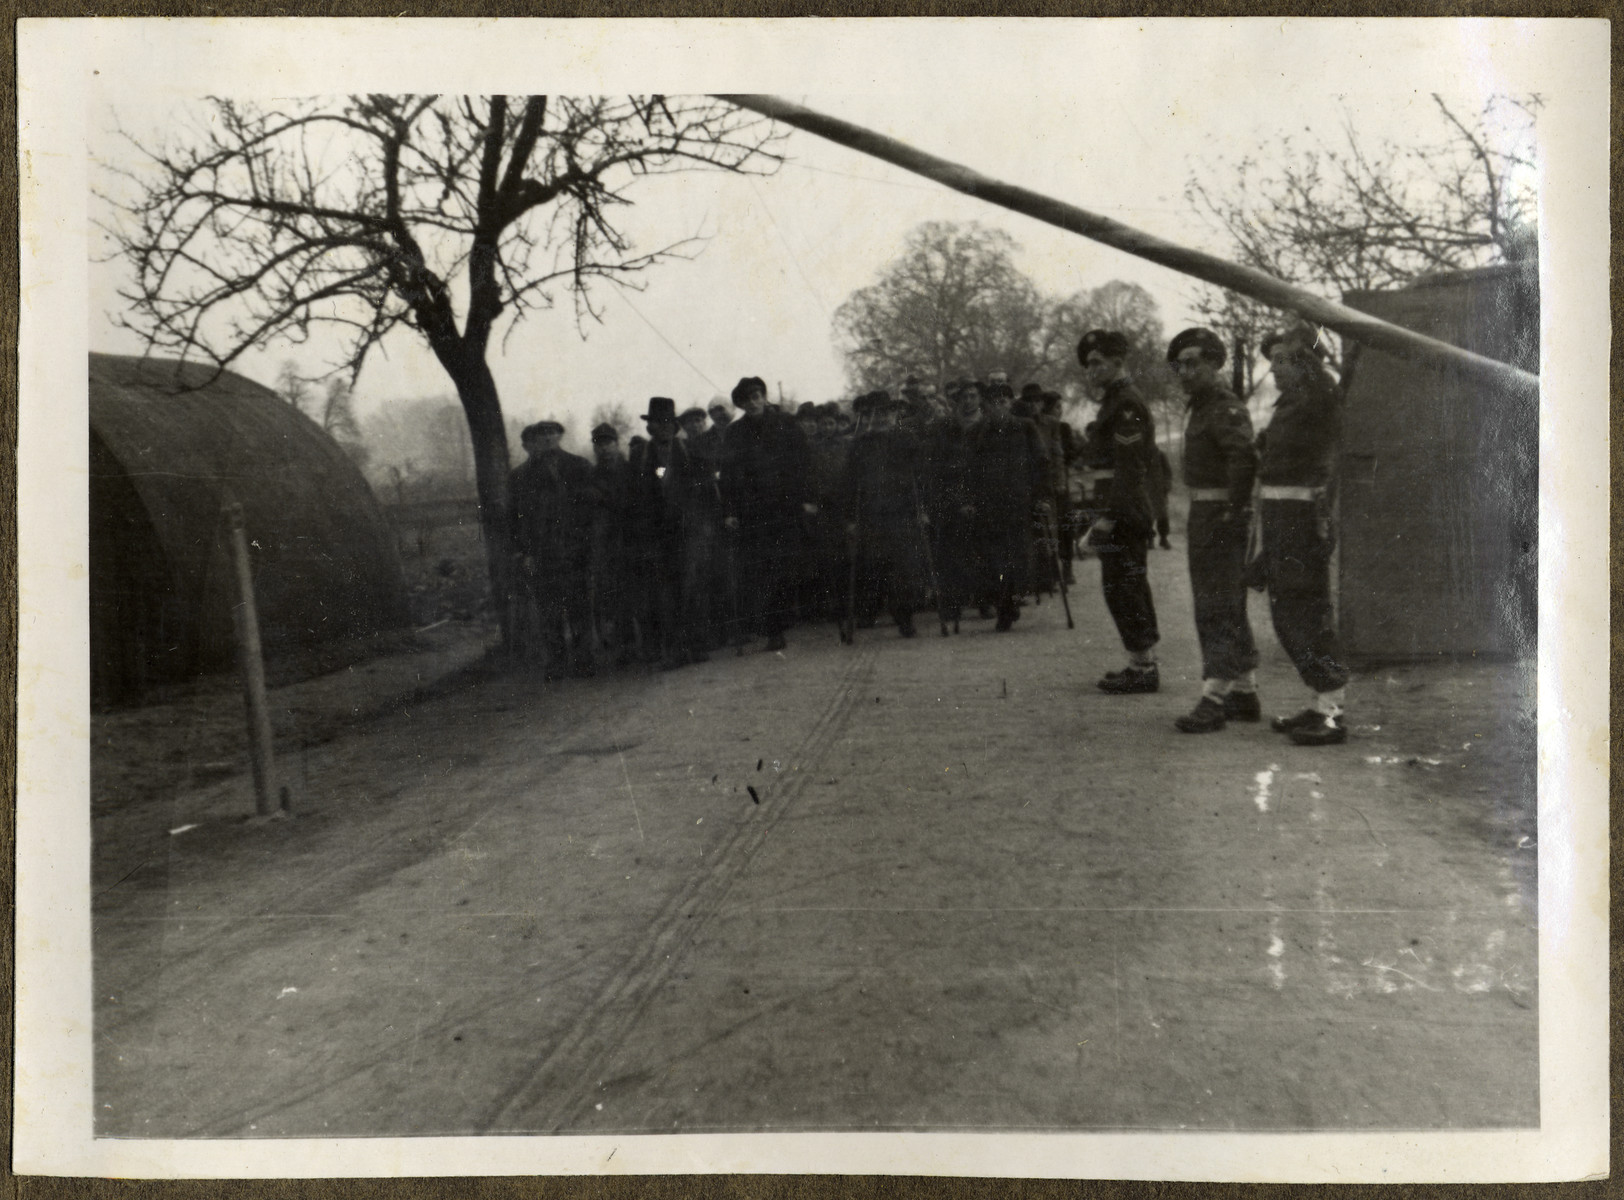 British soldiers guard the entrance to an unidentified displaced persons' camp.